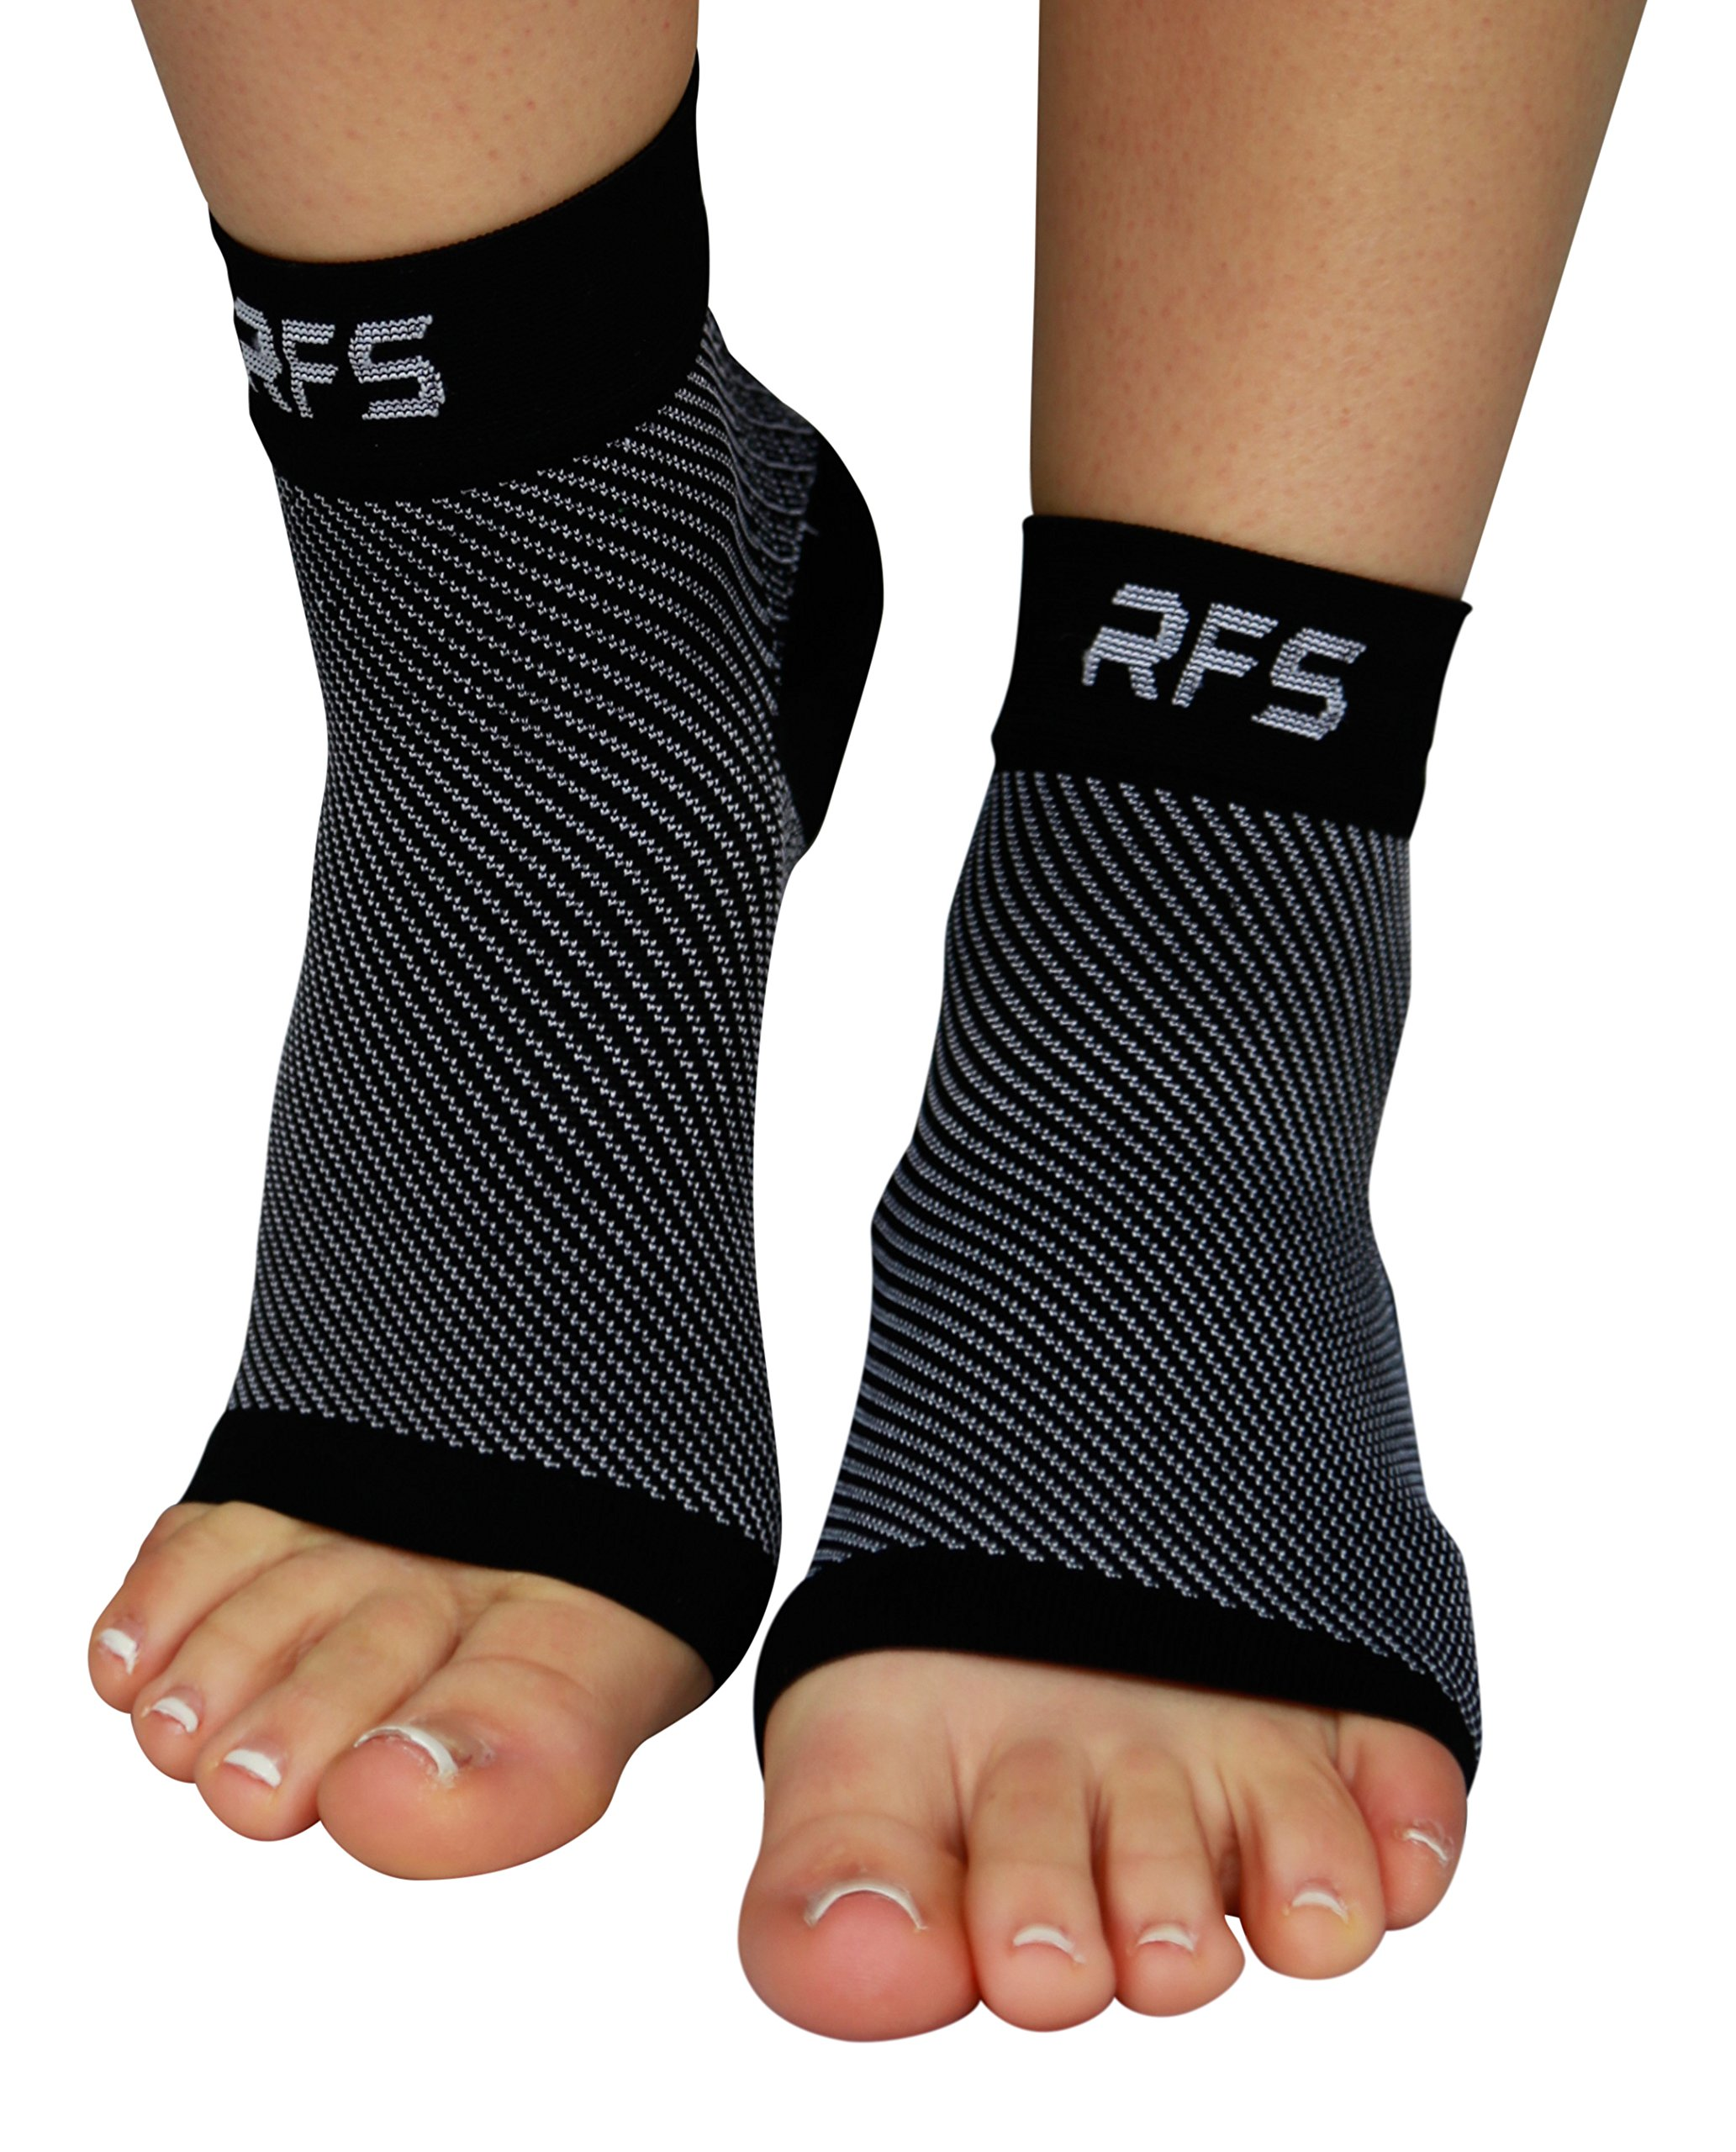 Plantar Fasciitis Foot Compression Sleeves for Injury Rehab & Joint Pain. Best Ankle Brace - Instant Relief & Support for Achilles Tendonitis, Fallen Arch, Heel Spurs, Swelling & Fatigue (BLK, LRG)